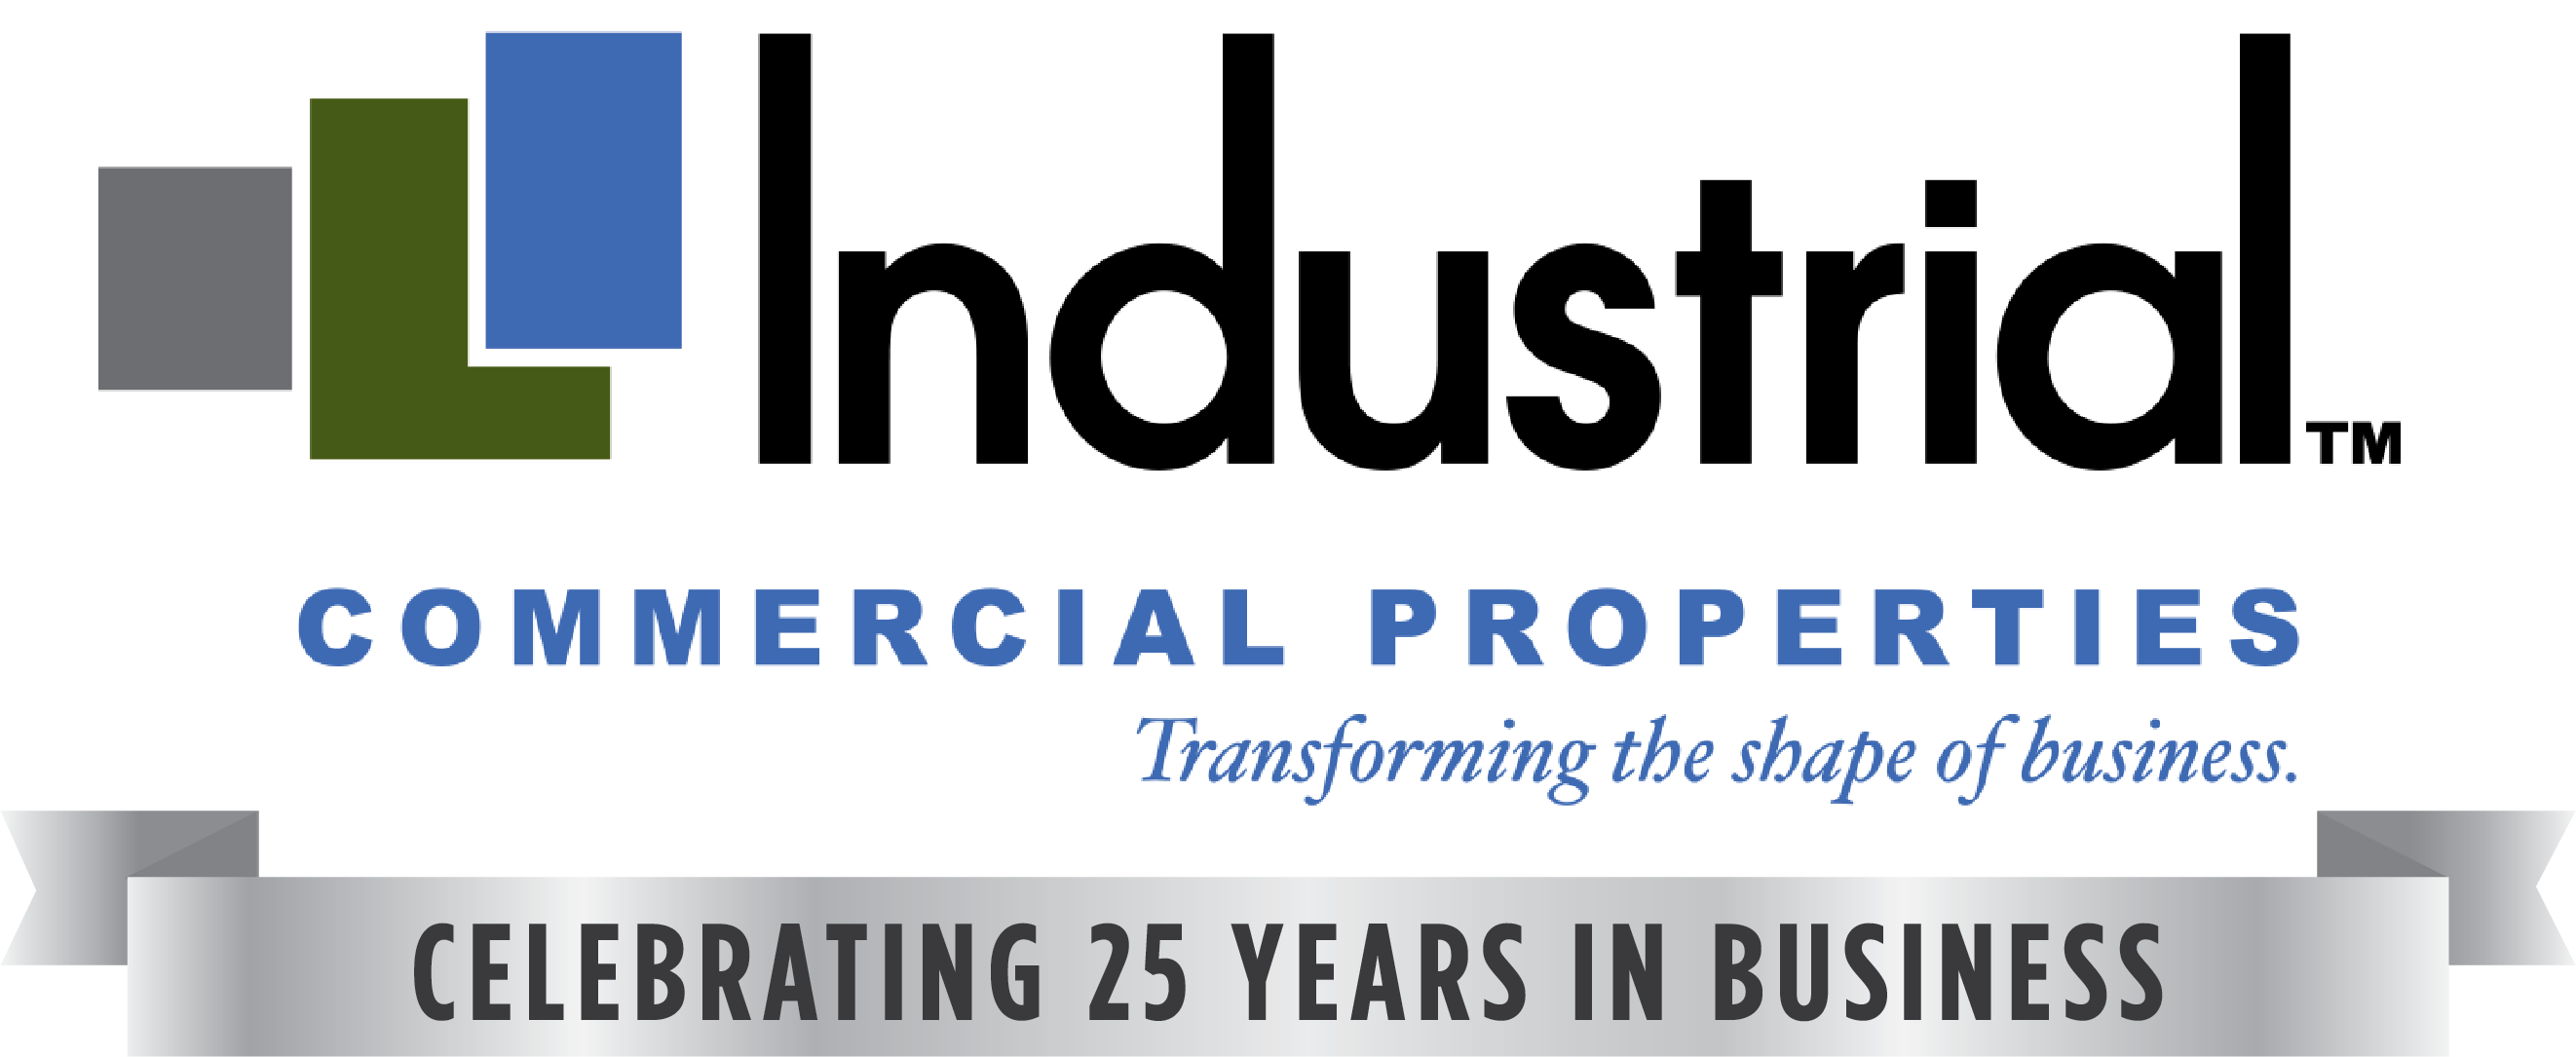 Industrial Commercial Properties logo